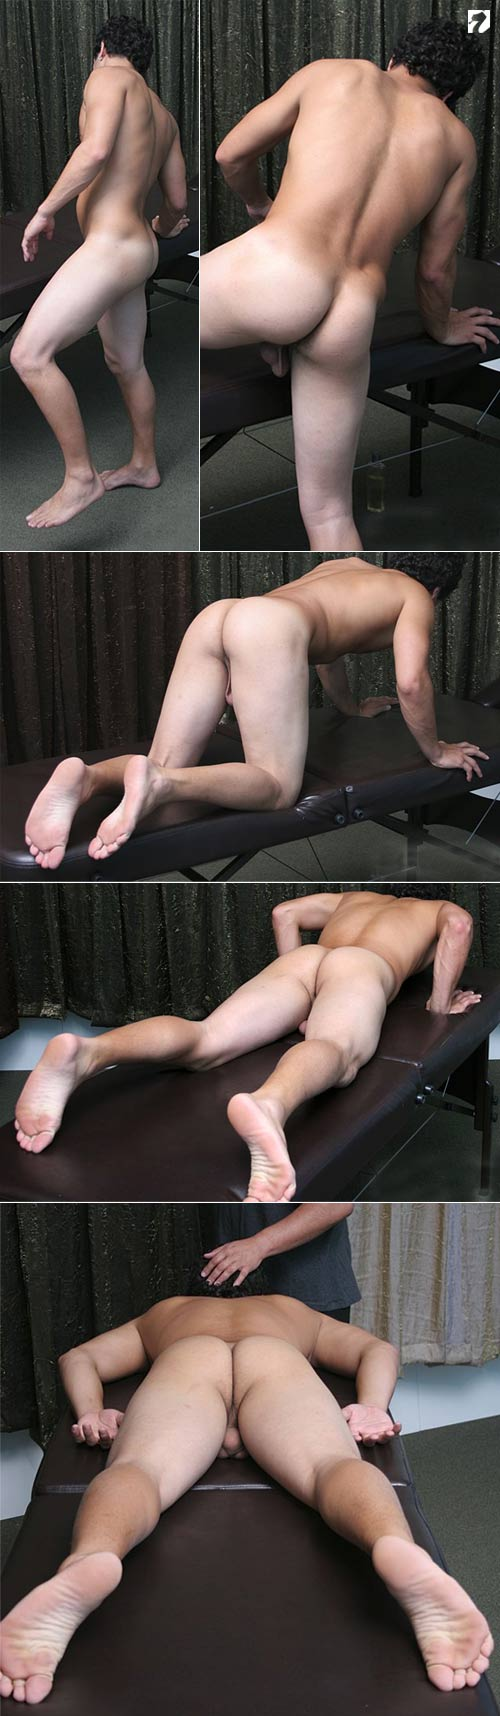 Tony Capucci's Massage at Jake Cruise